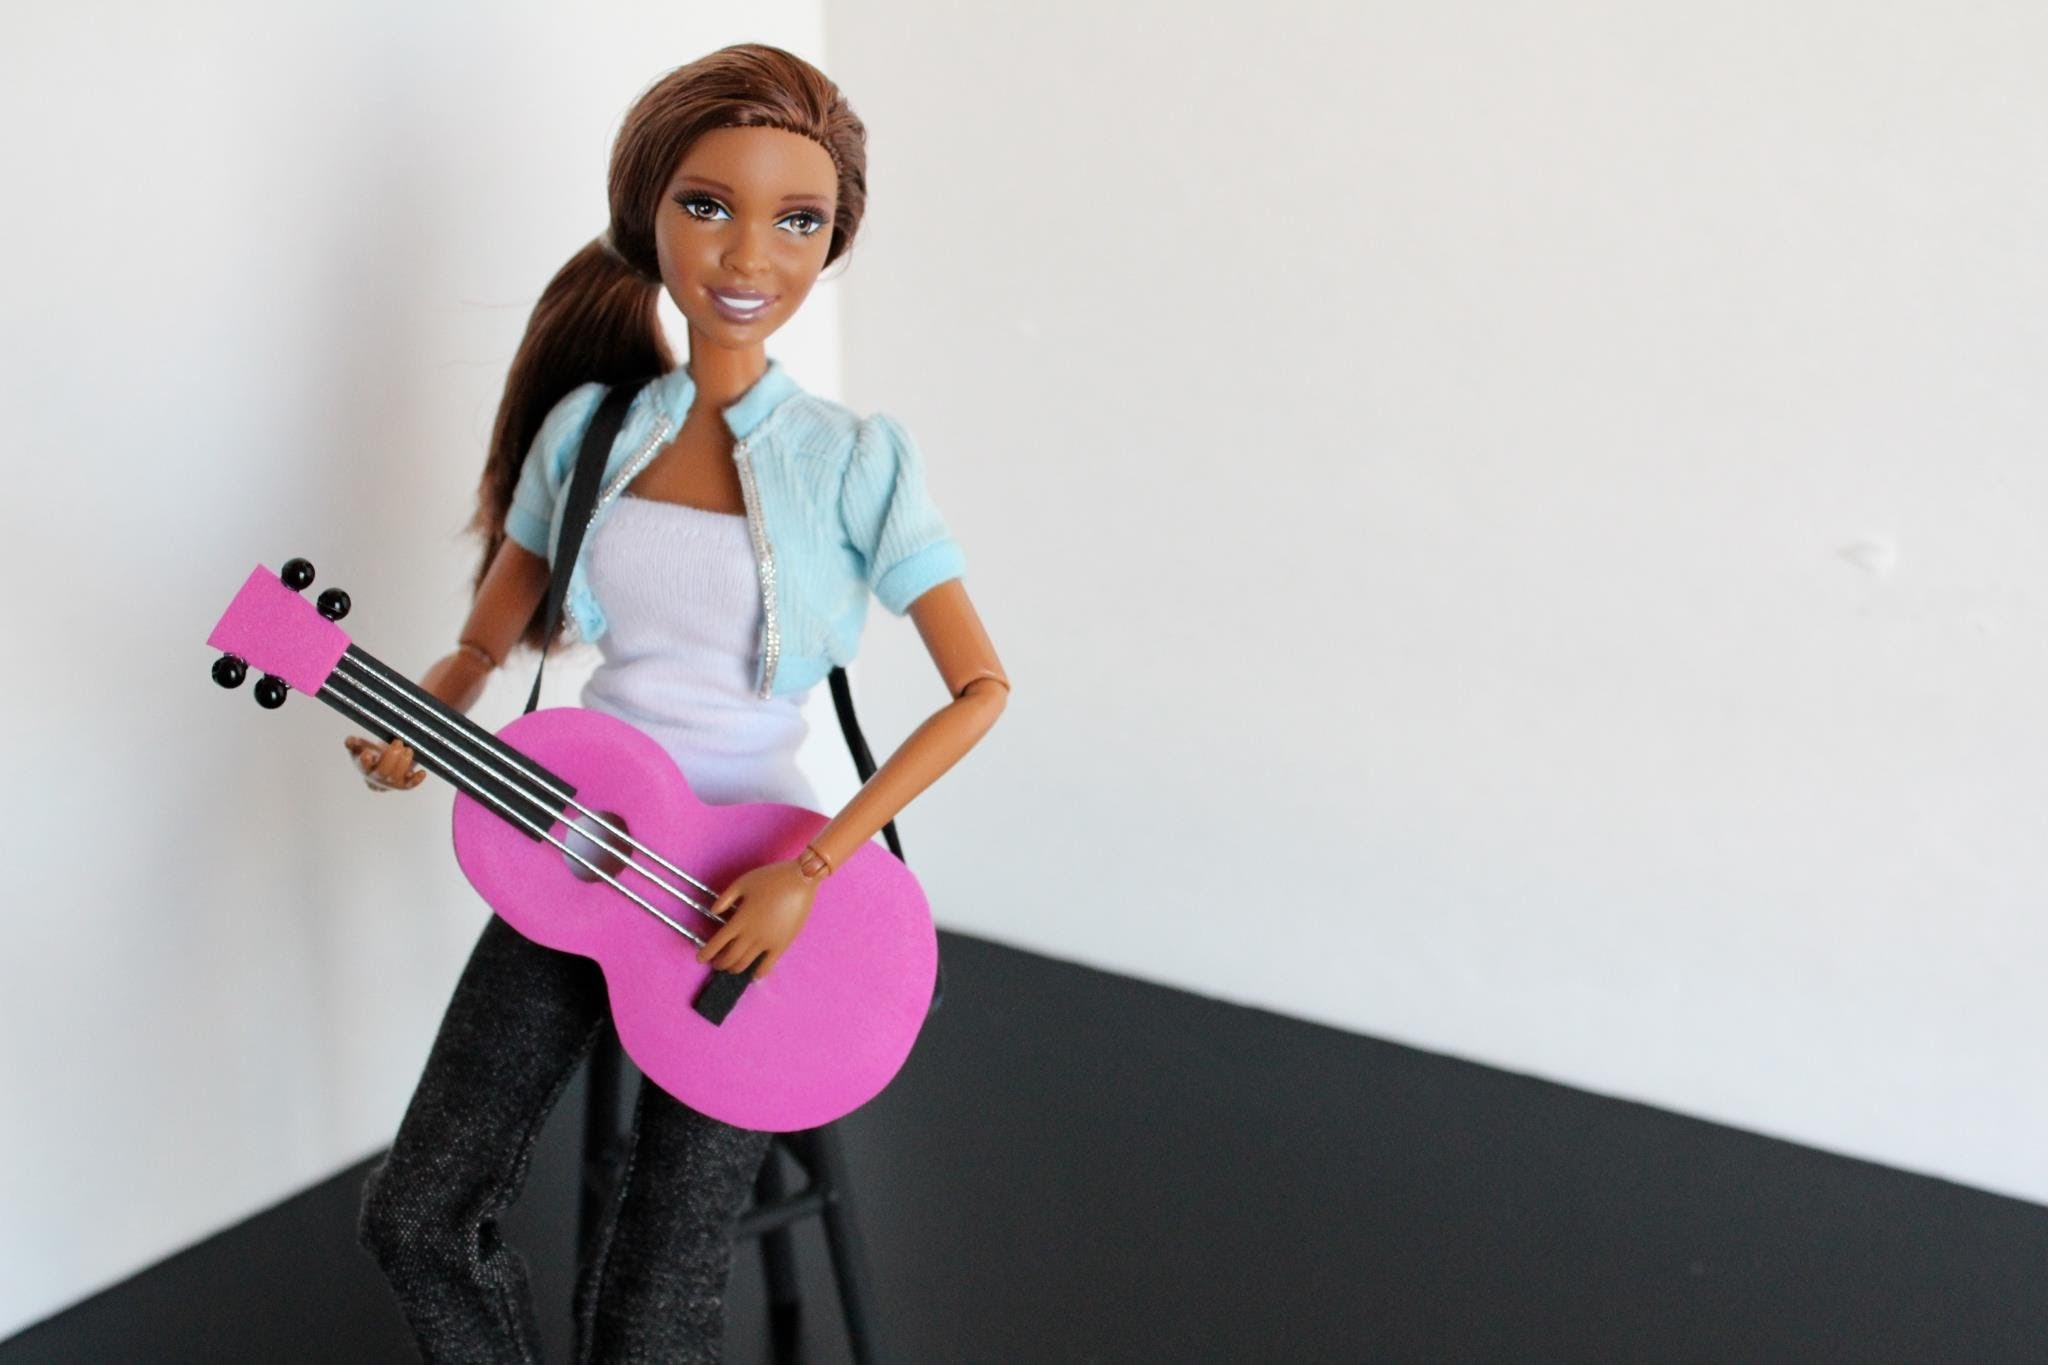 How to Make a Doll Guitar - Doll Crafts